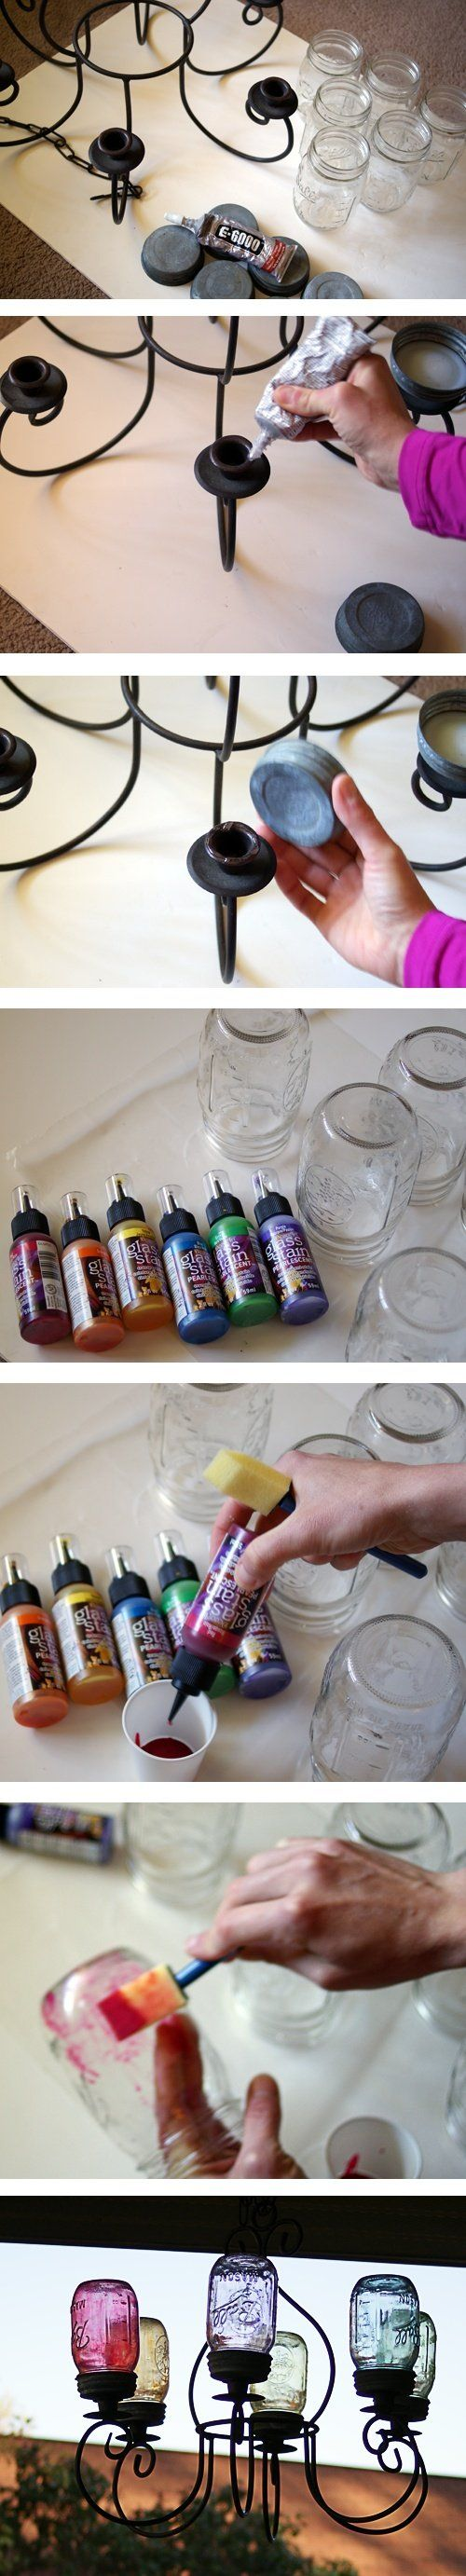 Mason Jar Chandelier DIY - would be cool to use the canning lids with the hole so you could put the jars over existing lights  - would also be cool with solar lights.